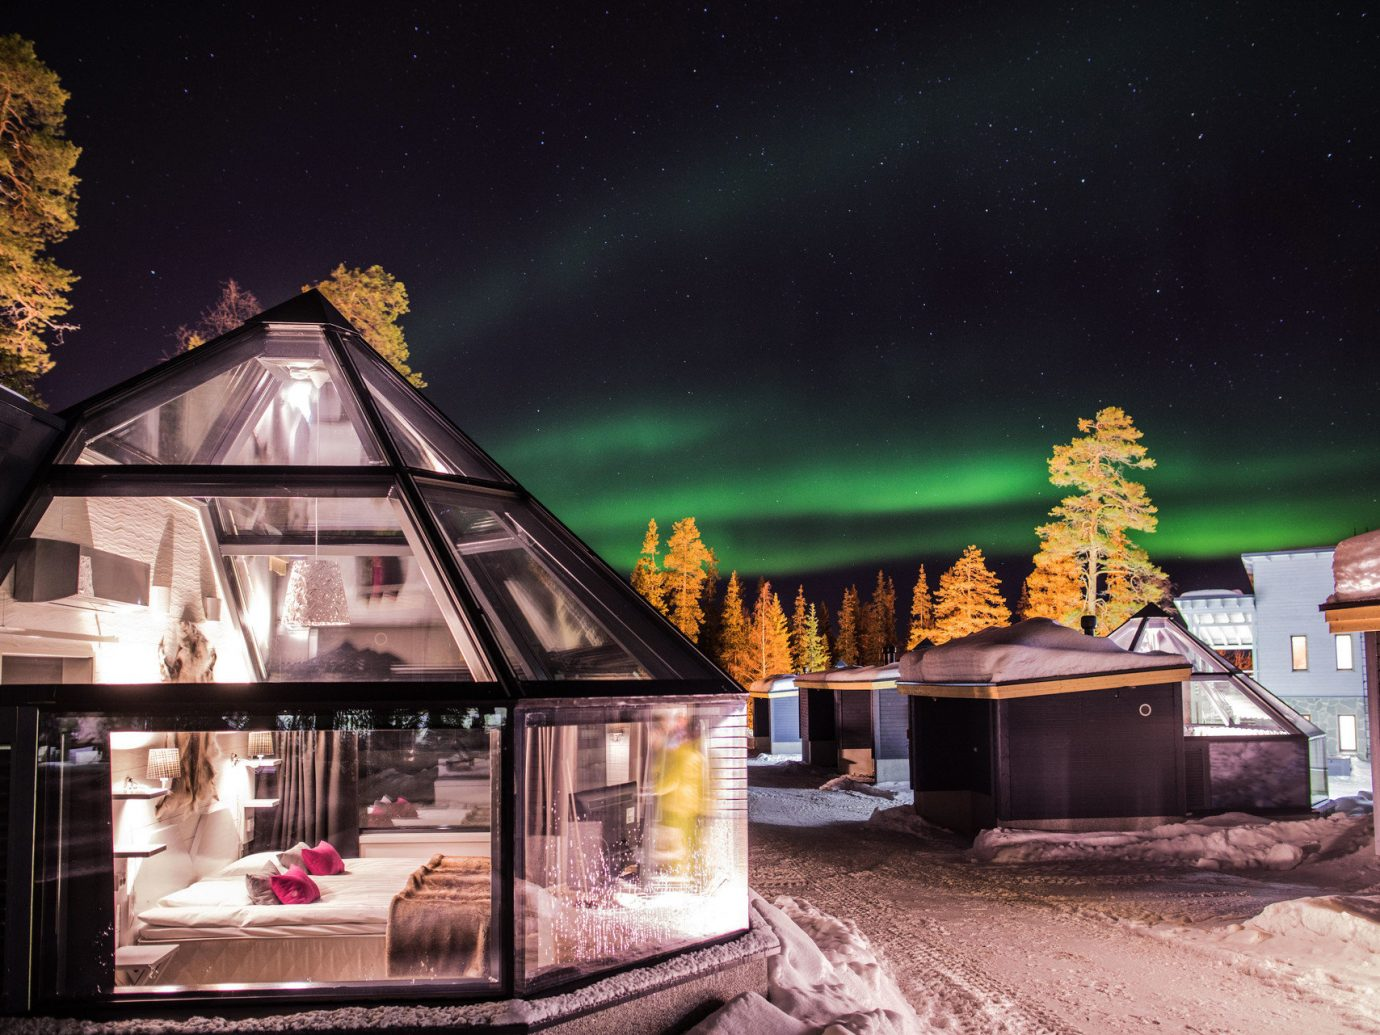 colorful Exterior glass building isolation lights Luxury majestic night night lights northern lights remote serene skylight snow trees Trip Ideas unique Winter house screenshot